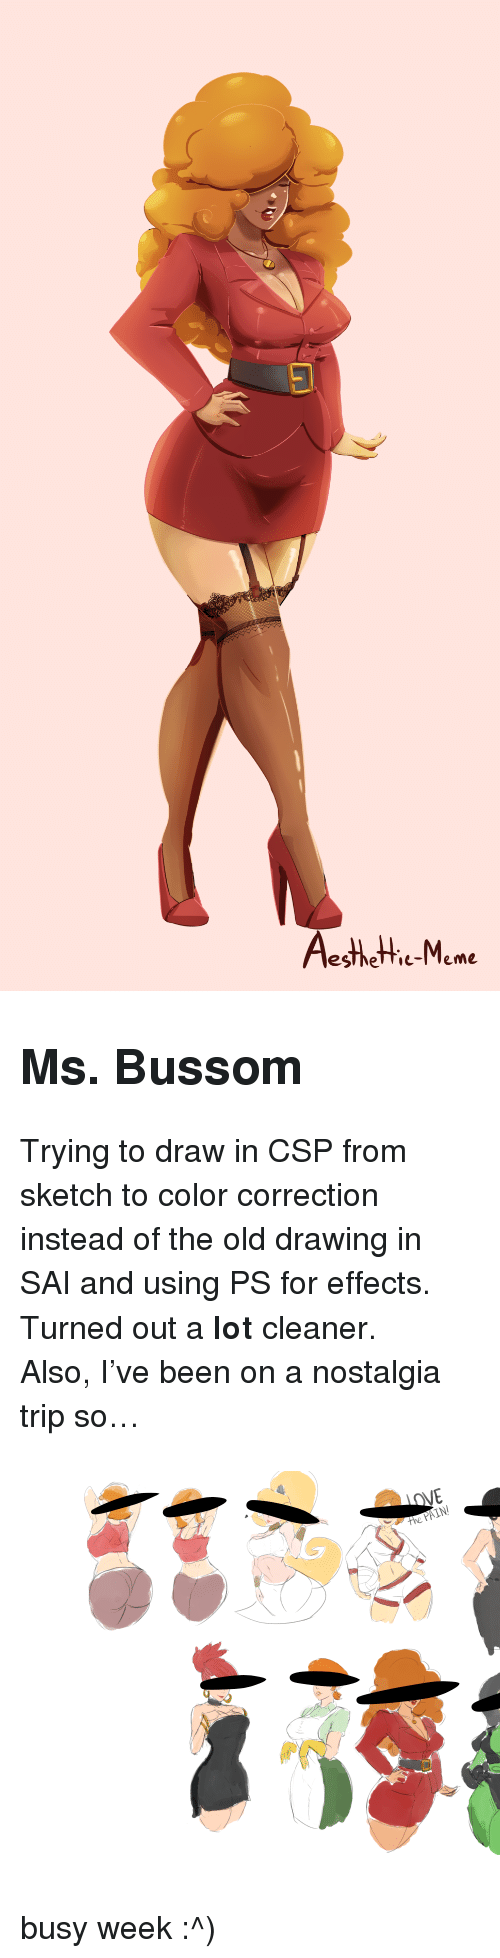 "Correction: esthetie-Meme <h2><b>Ms. Bussom</b></h2><p>Trying to draw in CSP from sketch to color correction instead of the old drawing in SAI and using PS for effects. Turned out a <b>lot</b> cleaner.</p><p>Also, I've been on a nostalgia trip so&hellip;</p><figure class=""tmblr-full"" data-orig-height=""7313"" data-orig-width=""10073""><img src=""https://78.media.tumblr.com/280b587b6197f92252b7e23116986d17/tumblr_inline_p5svm2oTcJ1sdoznj_540.png"" data-orig-height=""7313"" data-orig-width=""10073""/></figure><p>busy week :^)</p>"